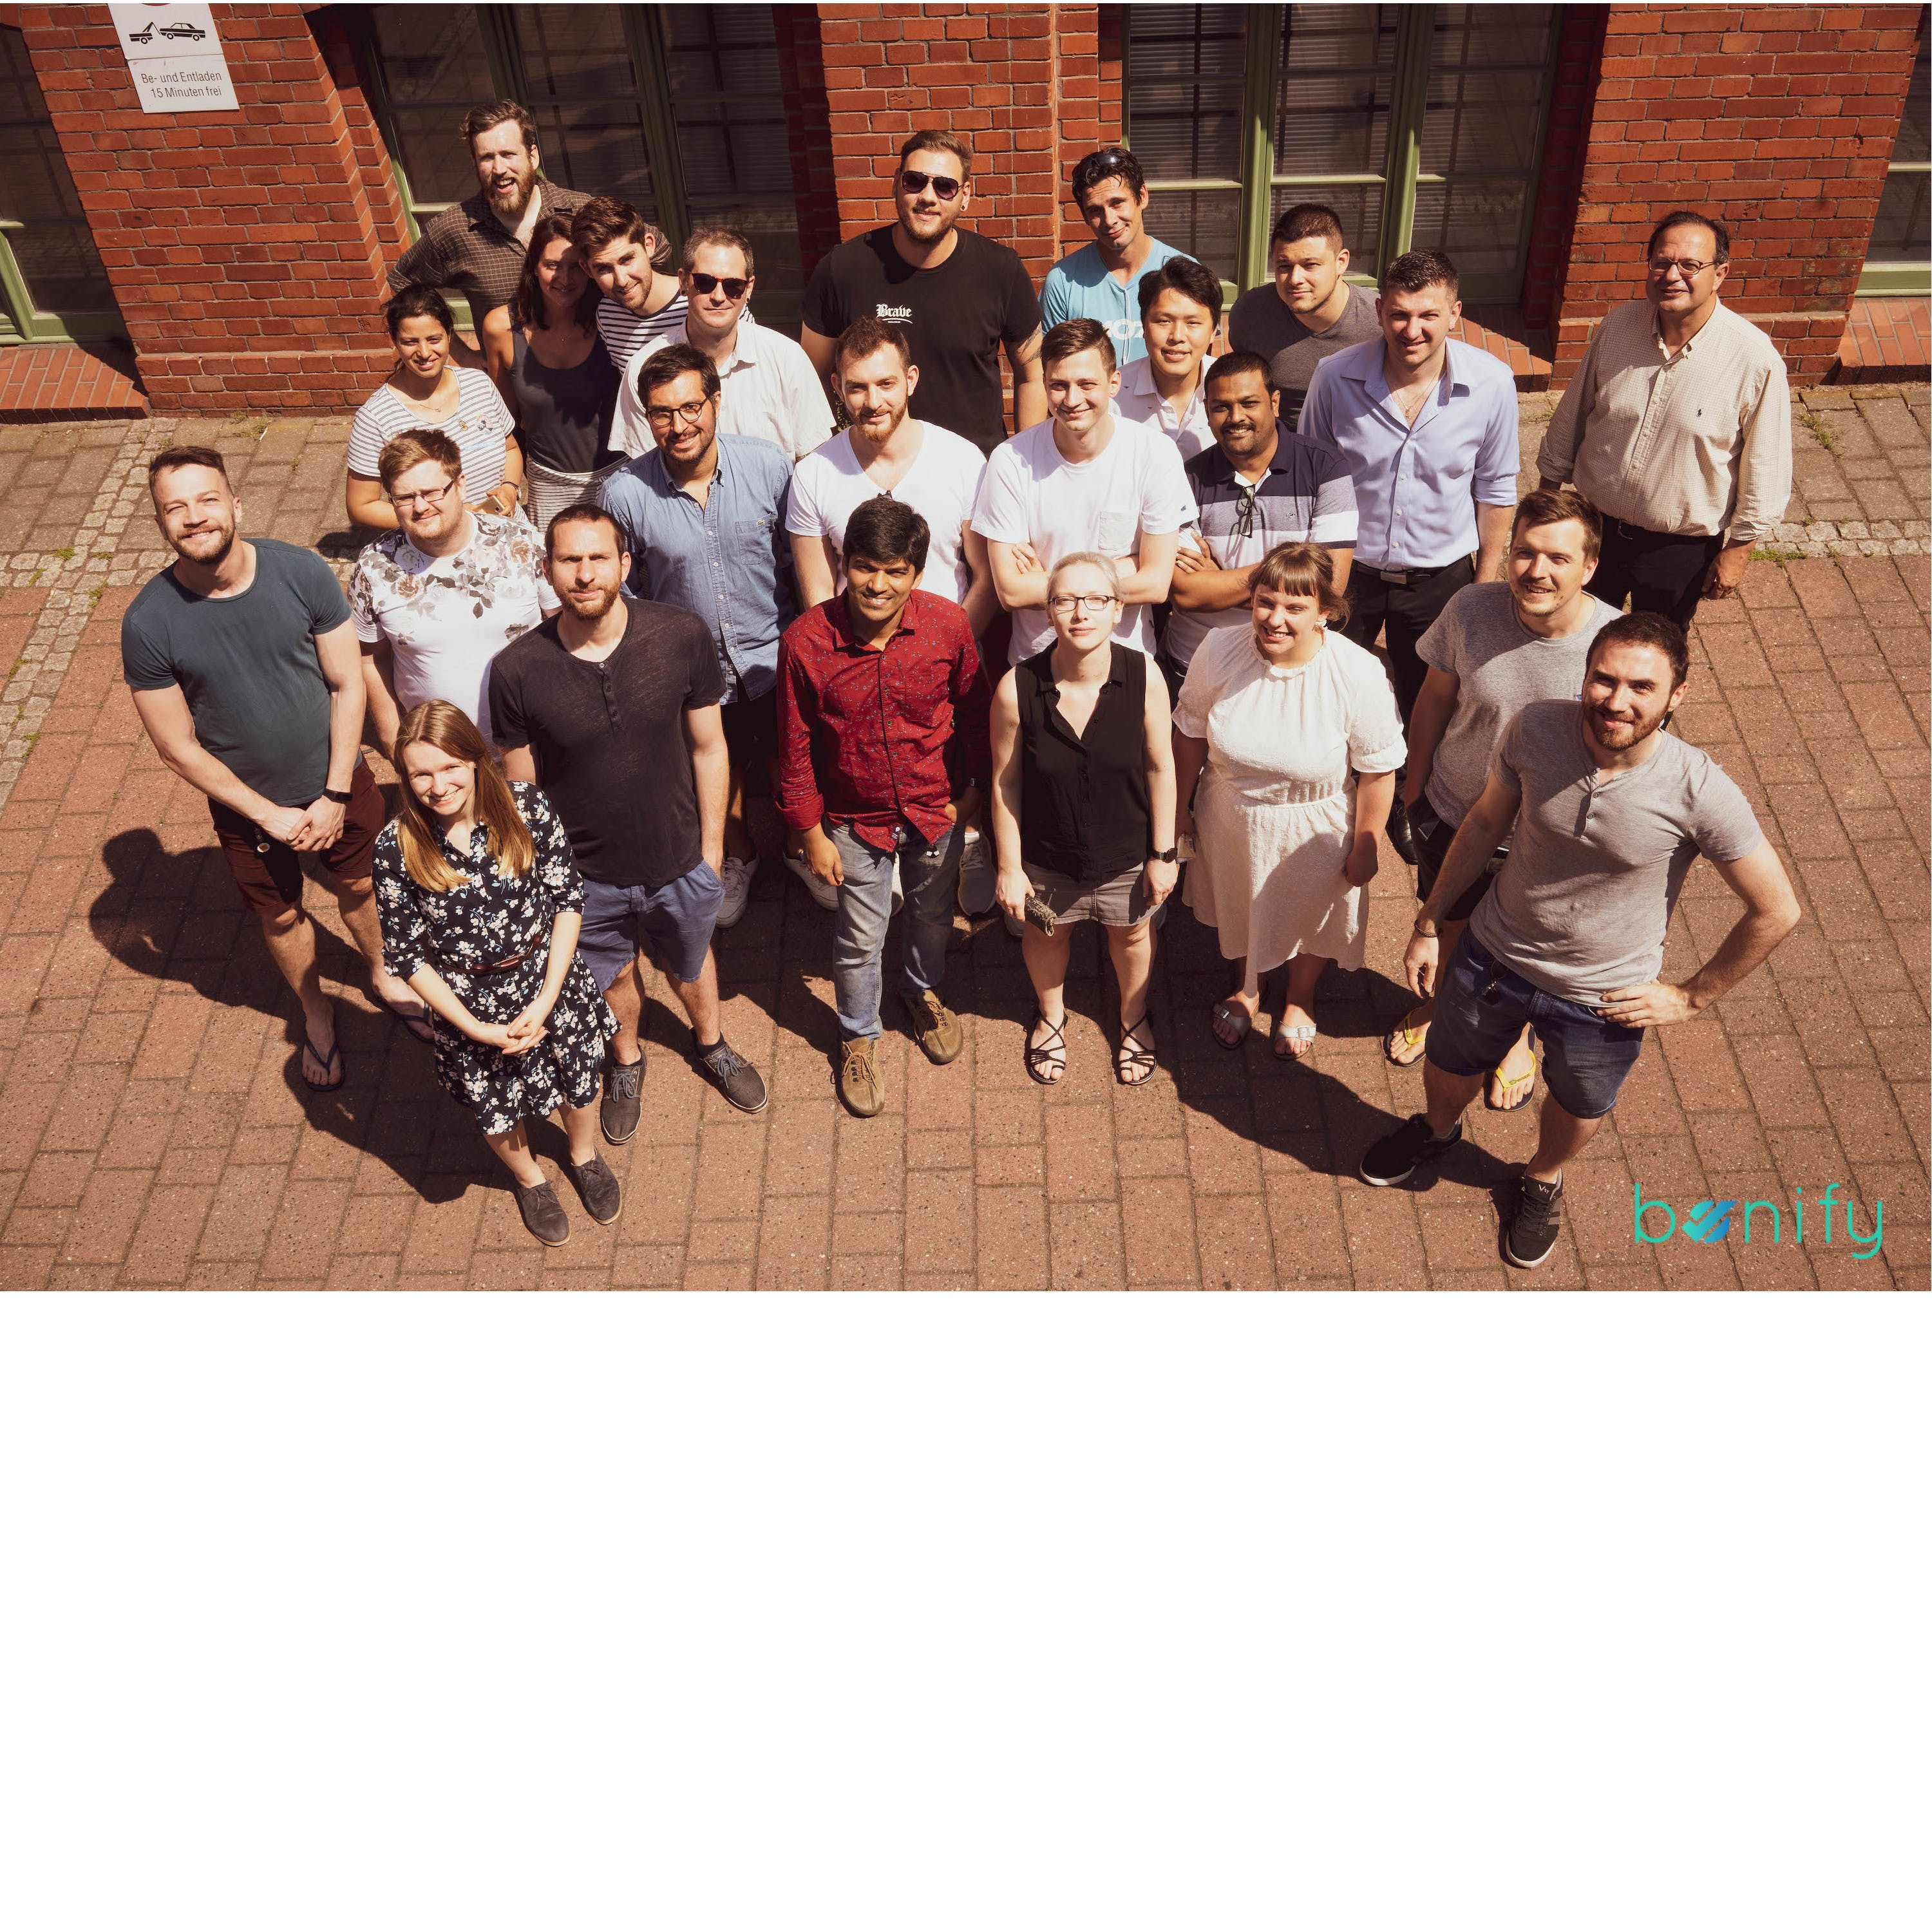 Bonify team picture with everyone who works there